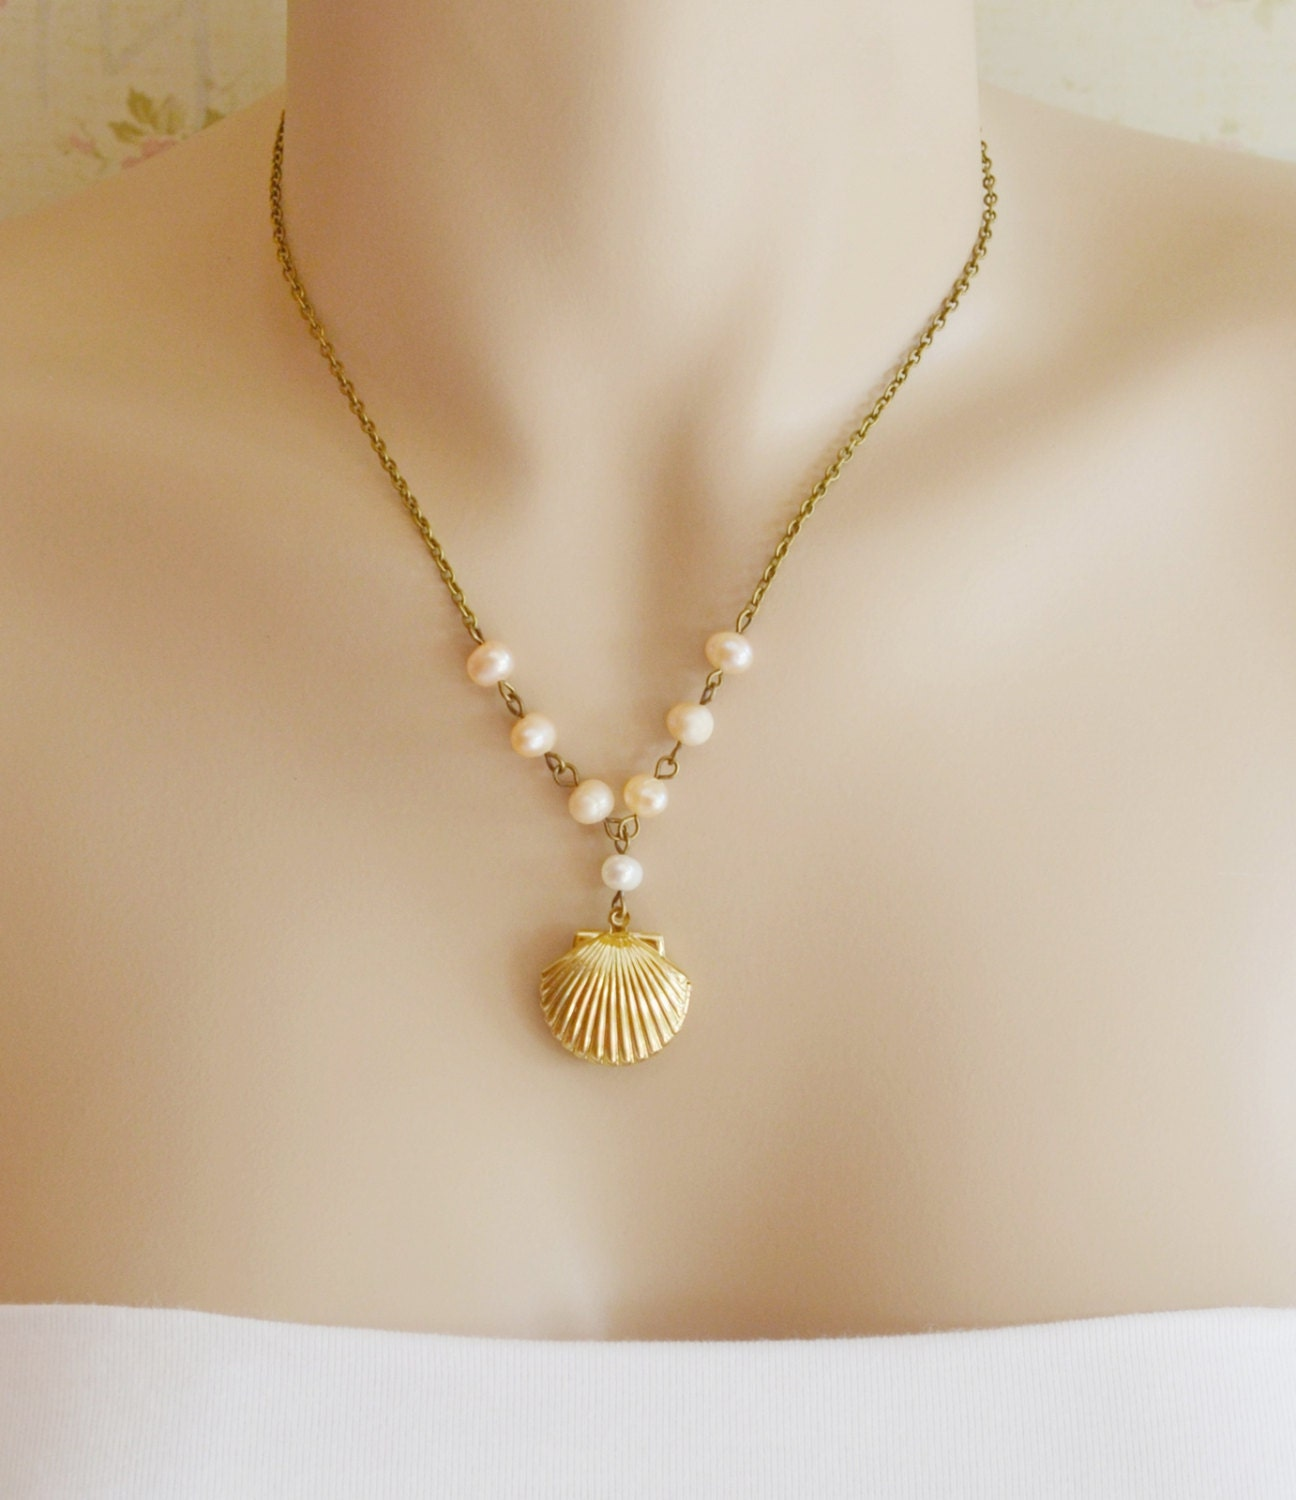 Sea shell locket necklace scallop shell locket pendant zoom mozeypictures